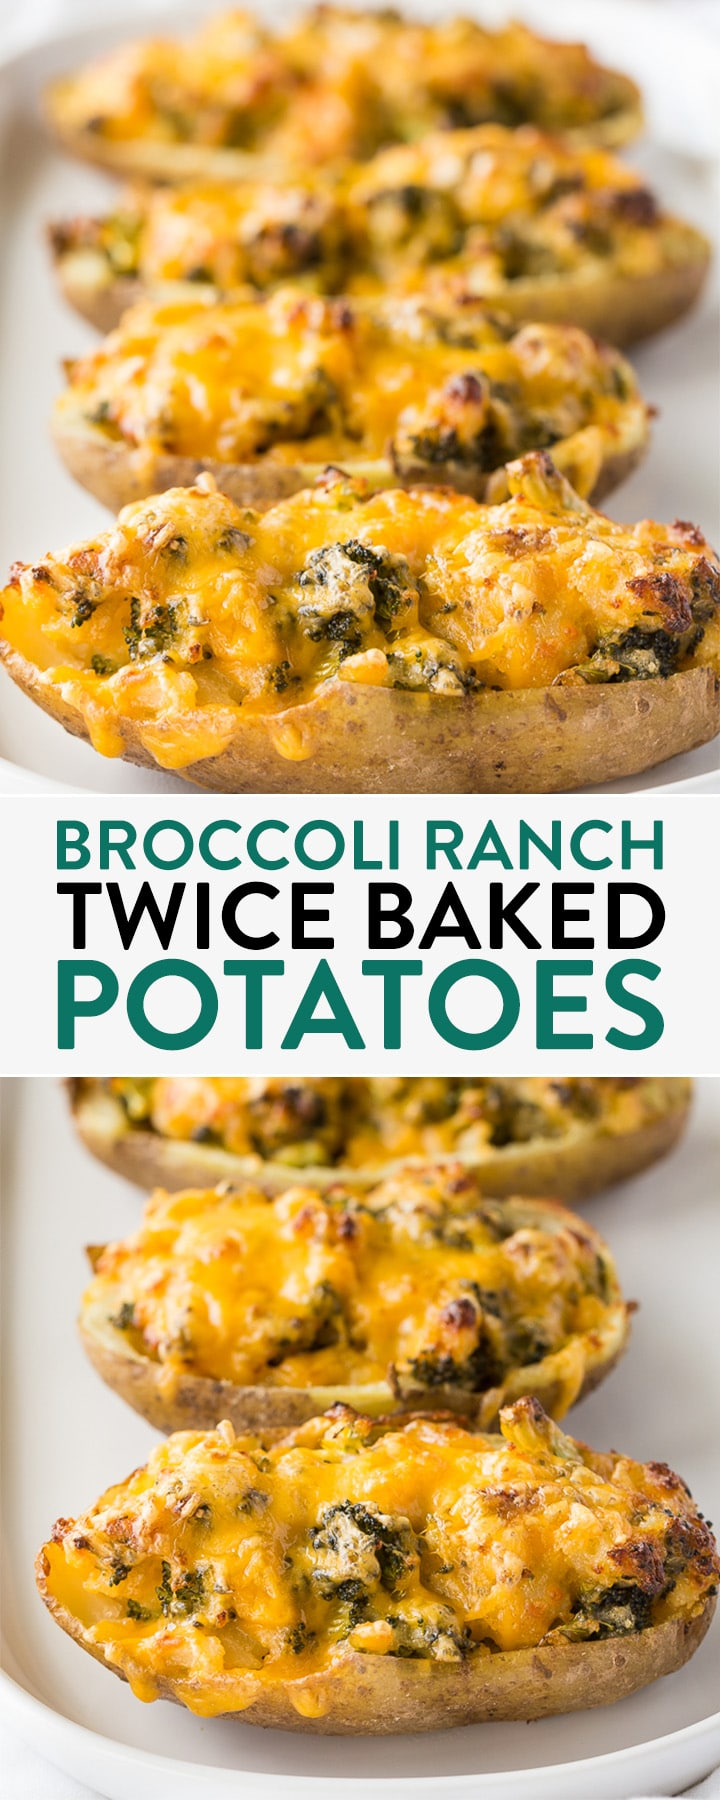 Broccoli ranch twice baked potatoes - this stuffed potato recipe is a twist on a classic recipe. Serve these at your next bbq or grill out!